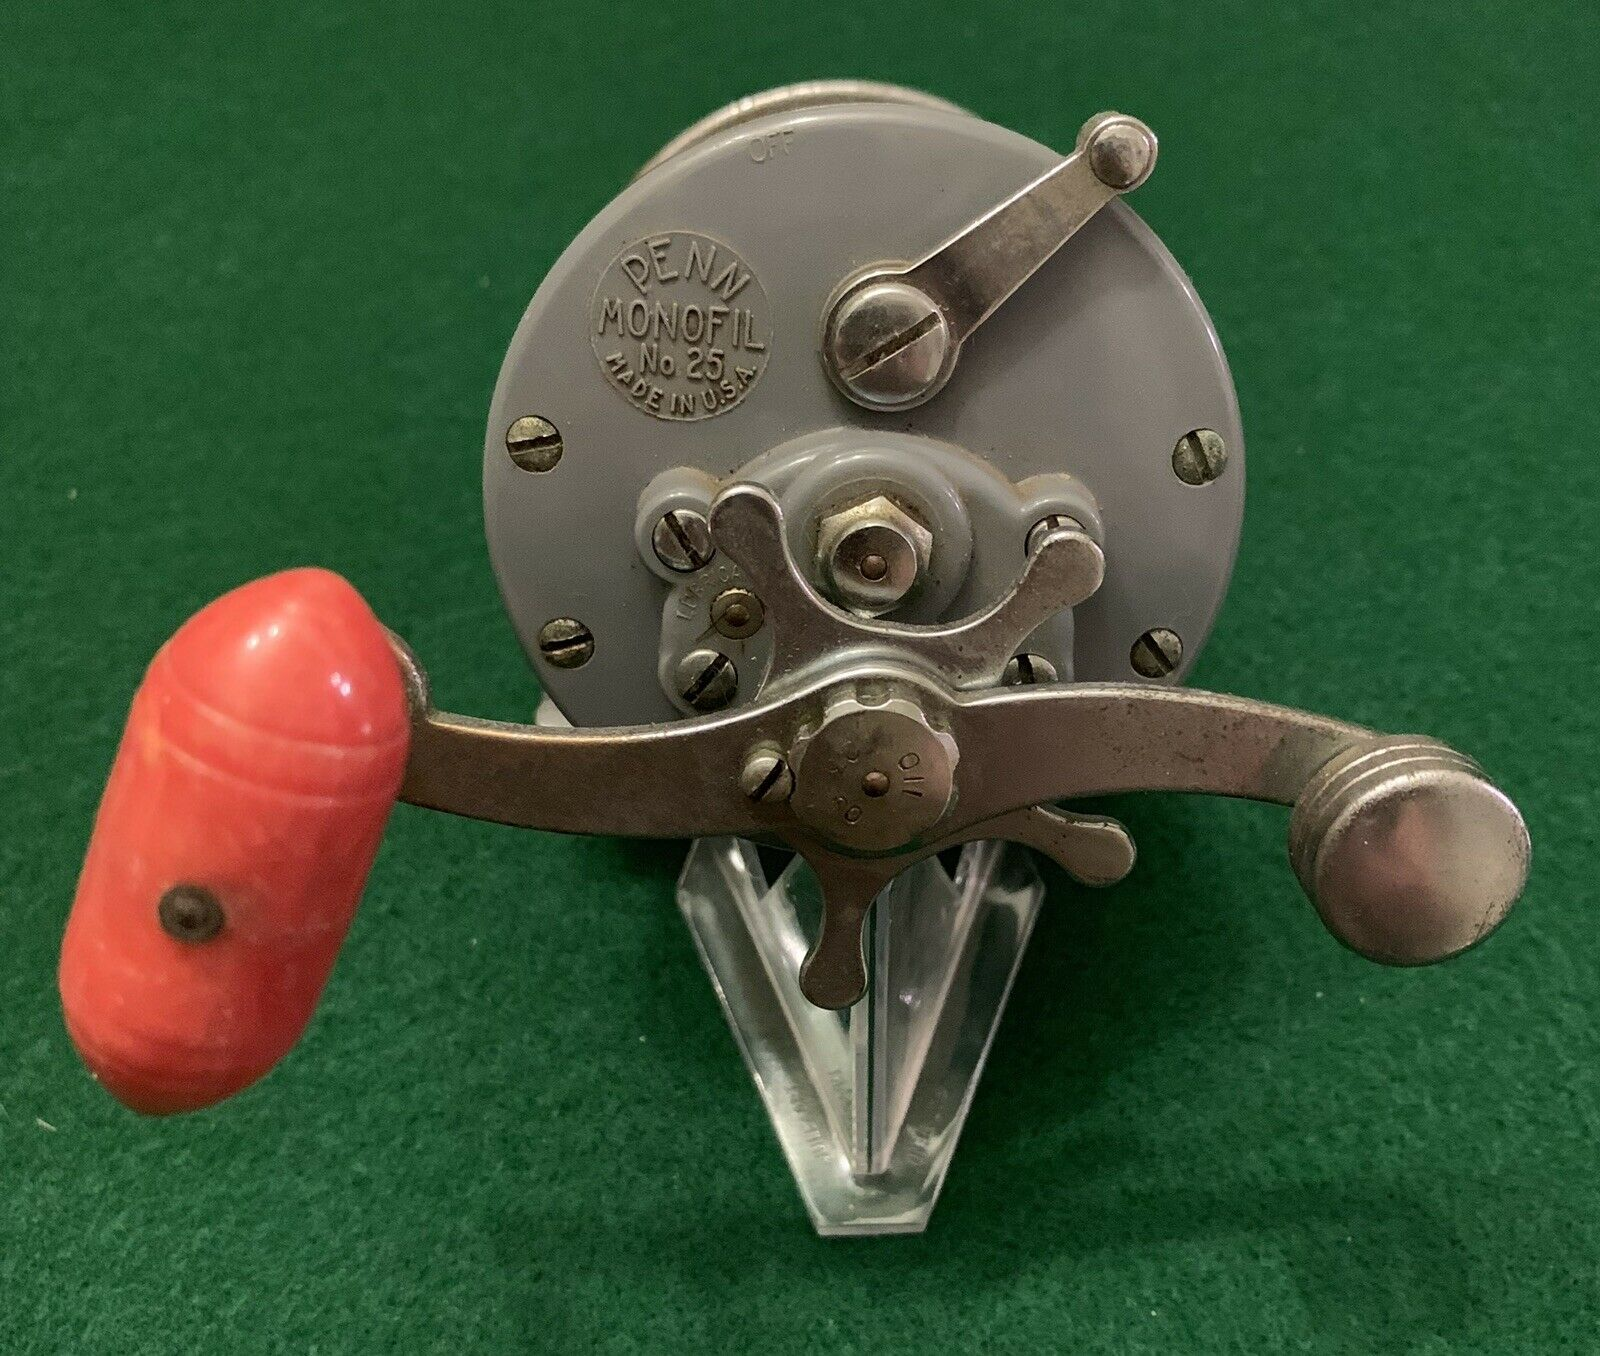 Penn  Monofil 25 Conventional Fishing Reel Made In USA Great Collectible Or User  hot sale online